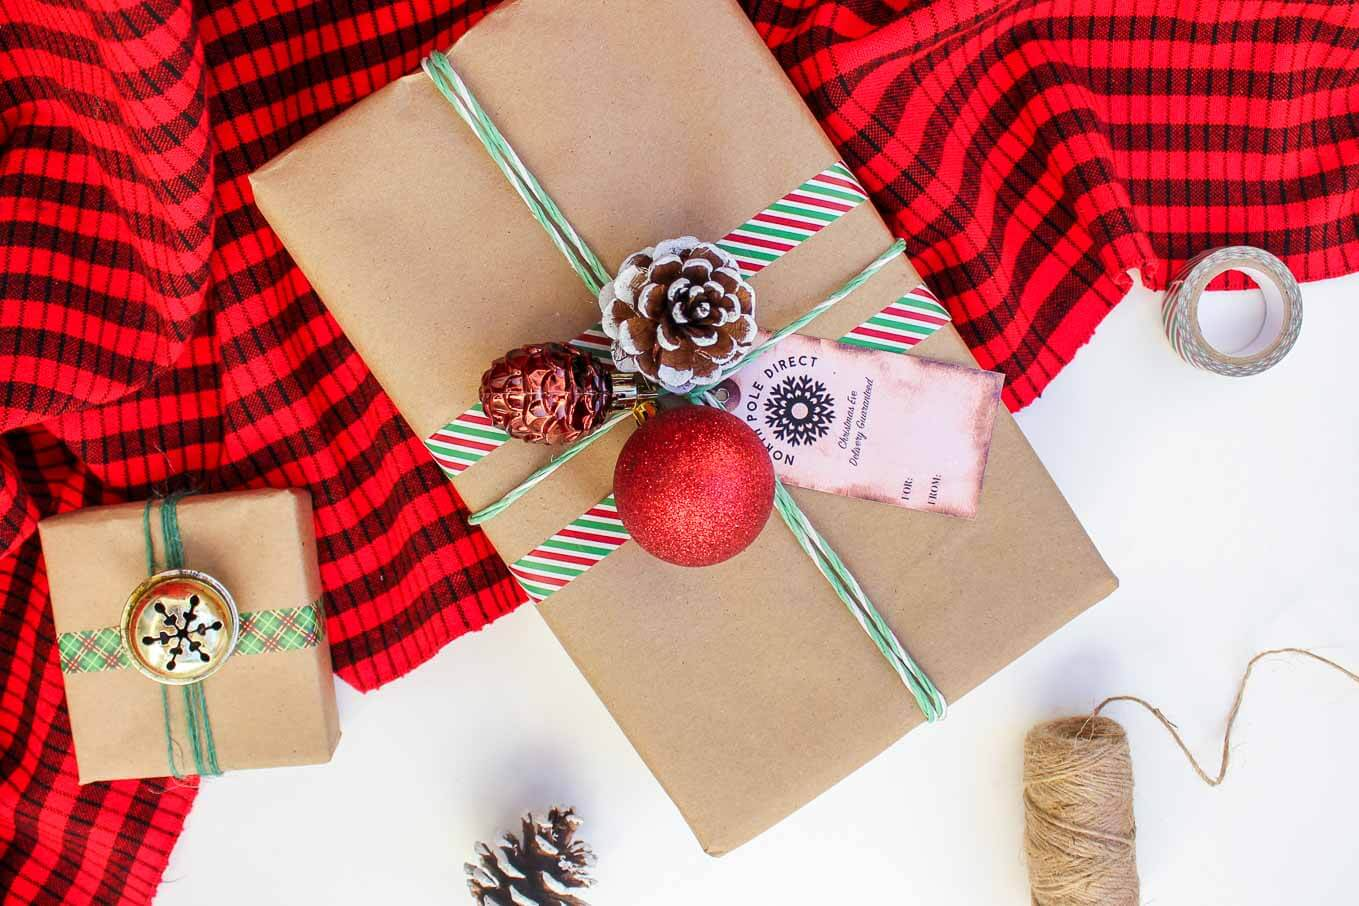 Christmas DIY gift wrap ideas with supplies from the dollar store. These gift topper ideas are sophisticated, festive and cheap! Click to see full tutorial. | MakeAndDoCrew.com